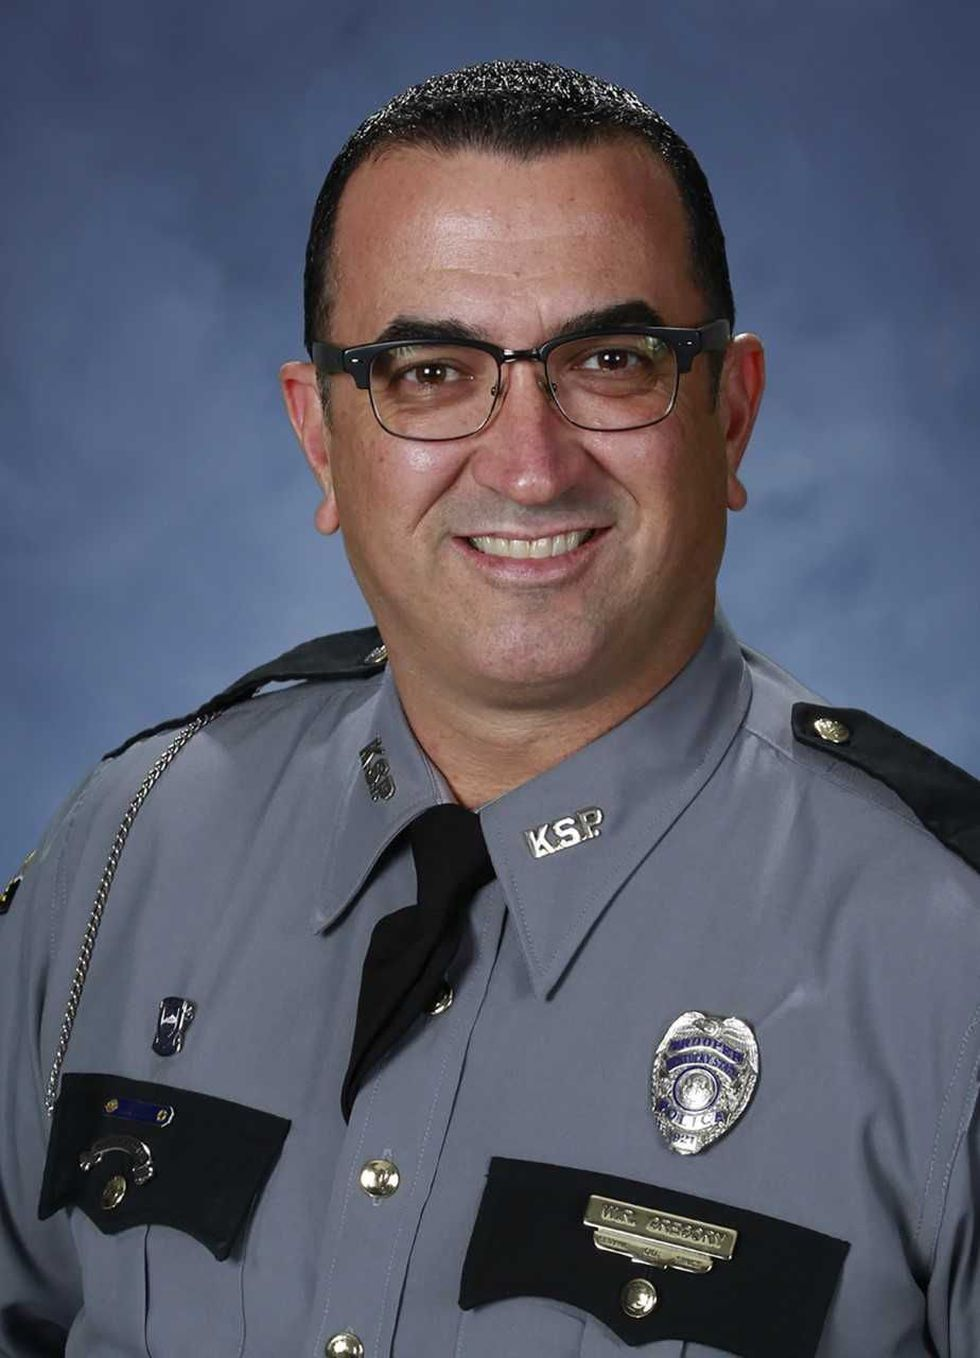 Master Trooper William Gregory has also joined the Public Affairs Branch (Source: KSP)